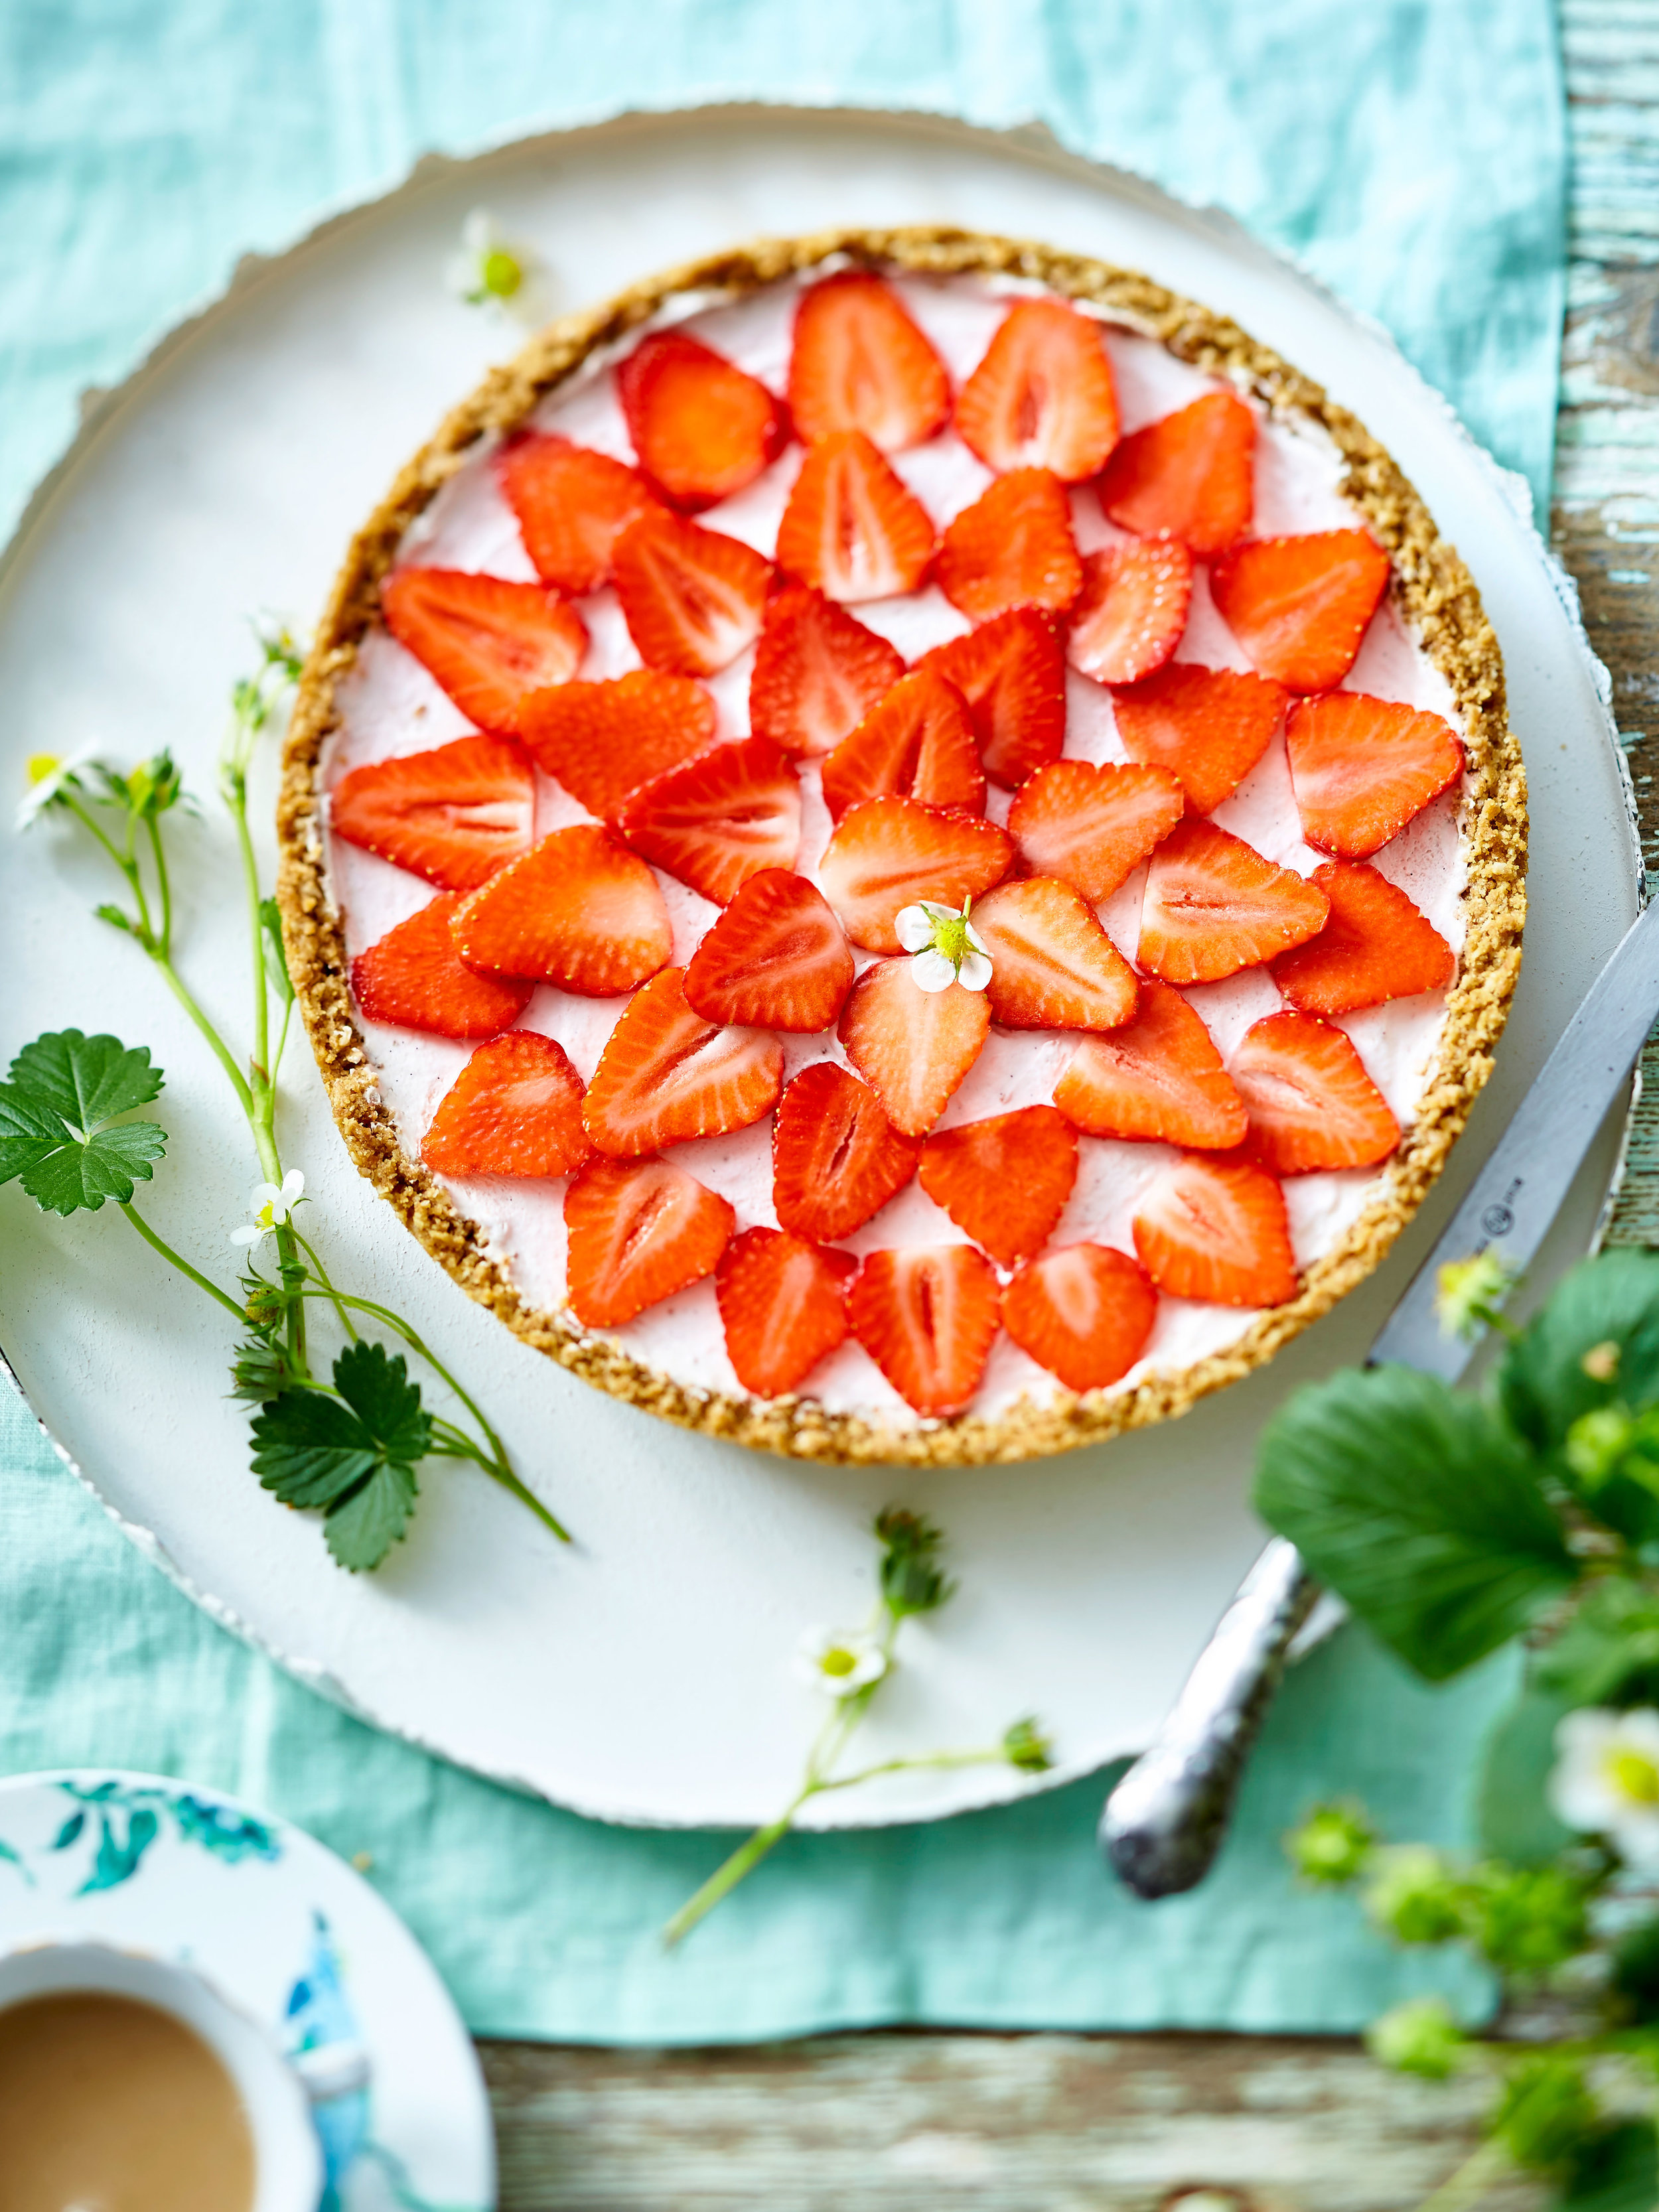 A simple, delightful pairing: strawberries and cream, in an easy to make tart. From a recipe in the June 2018 issue of LandScape